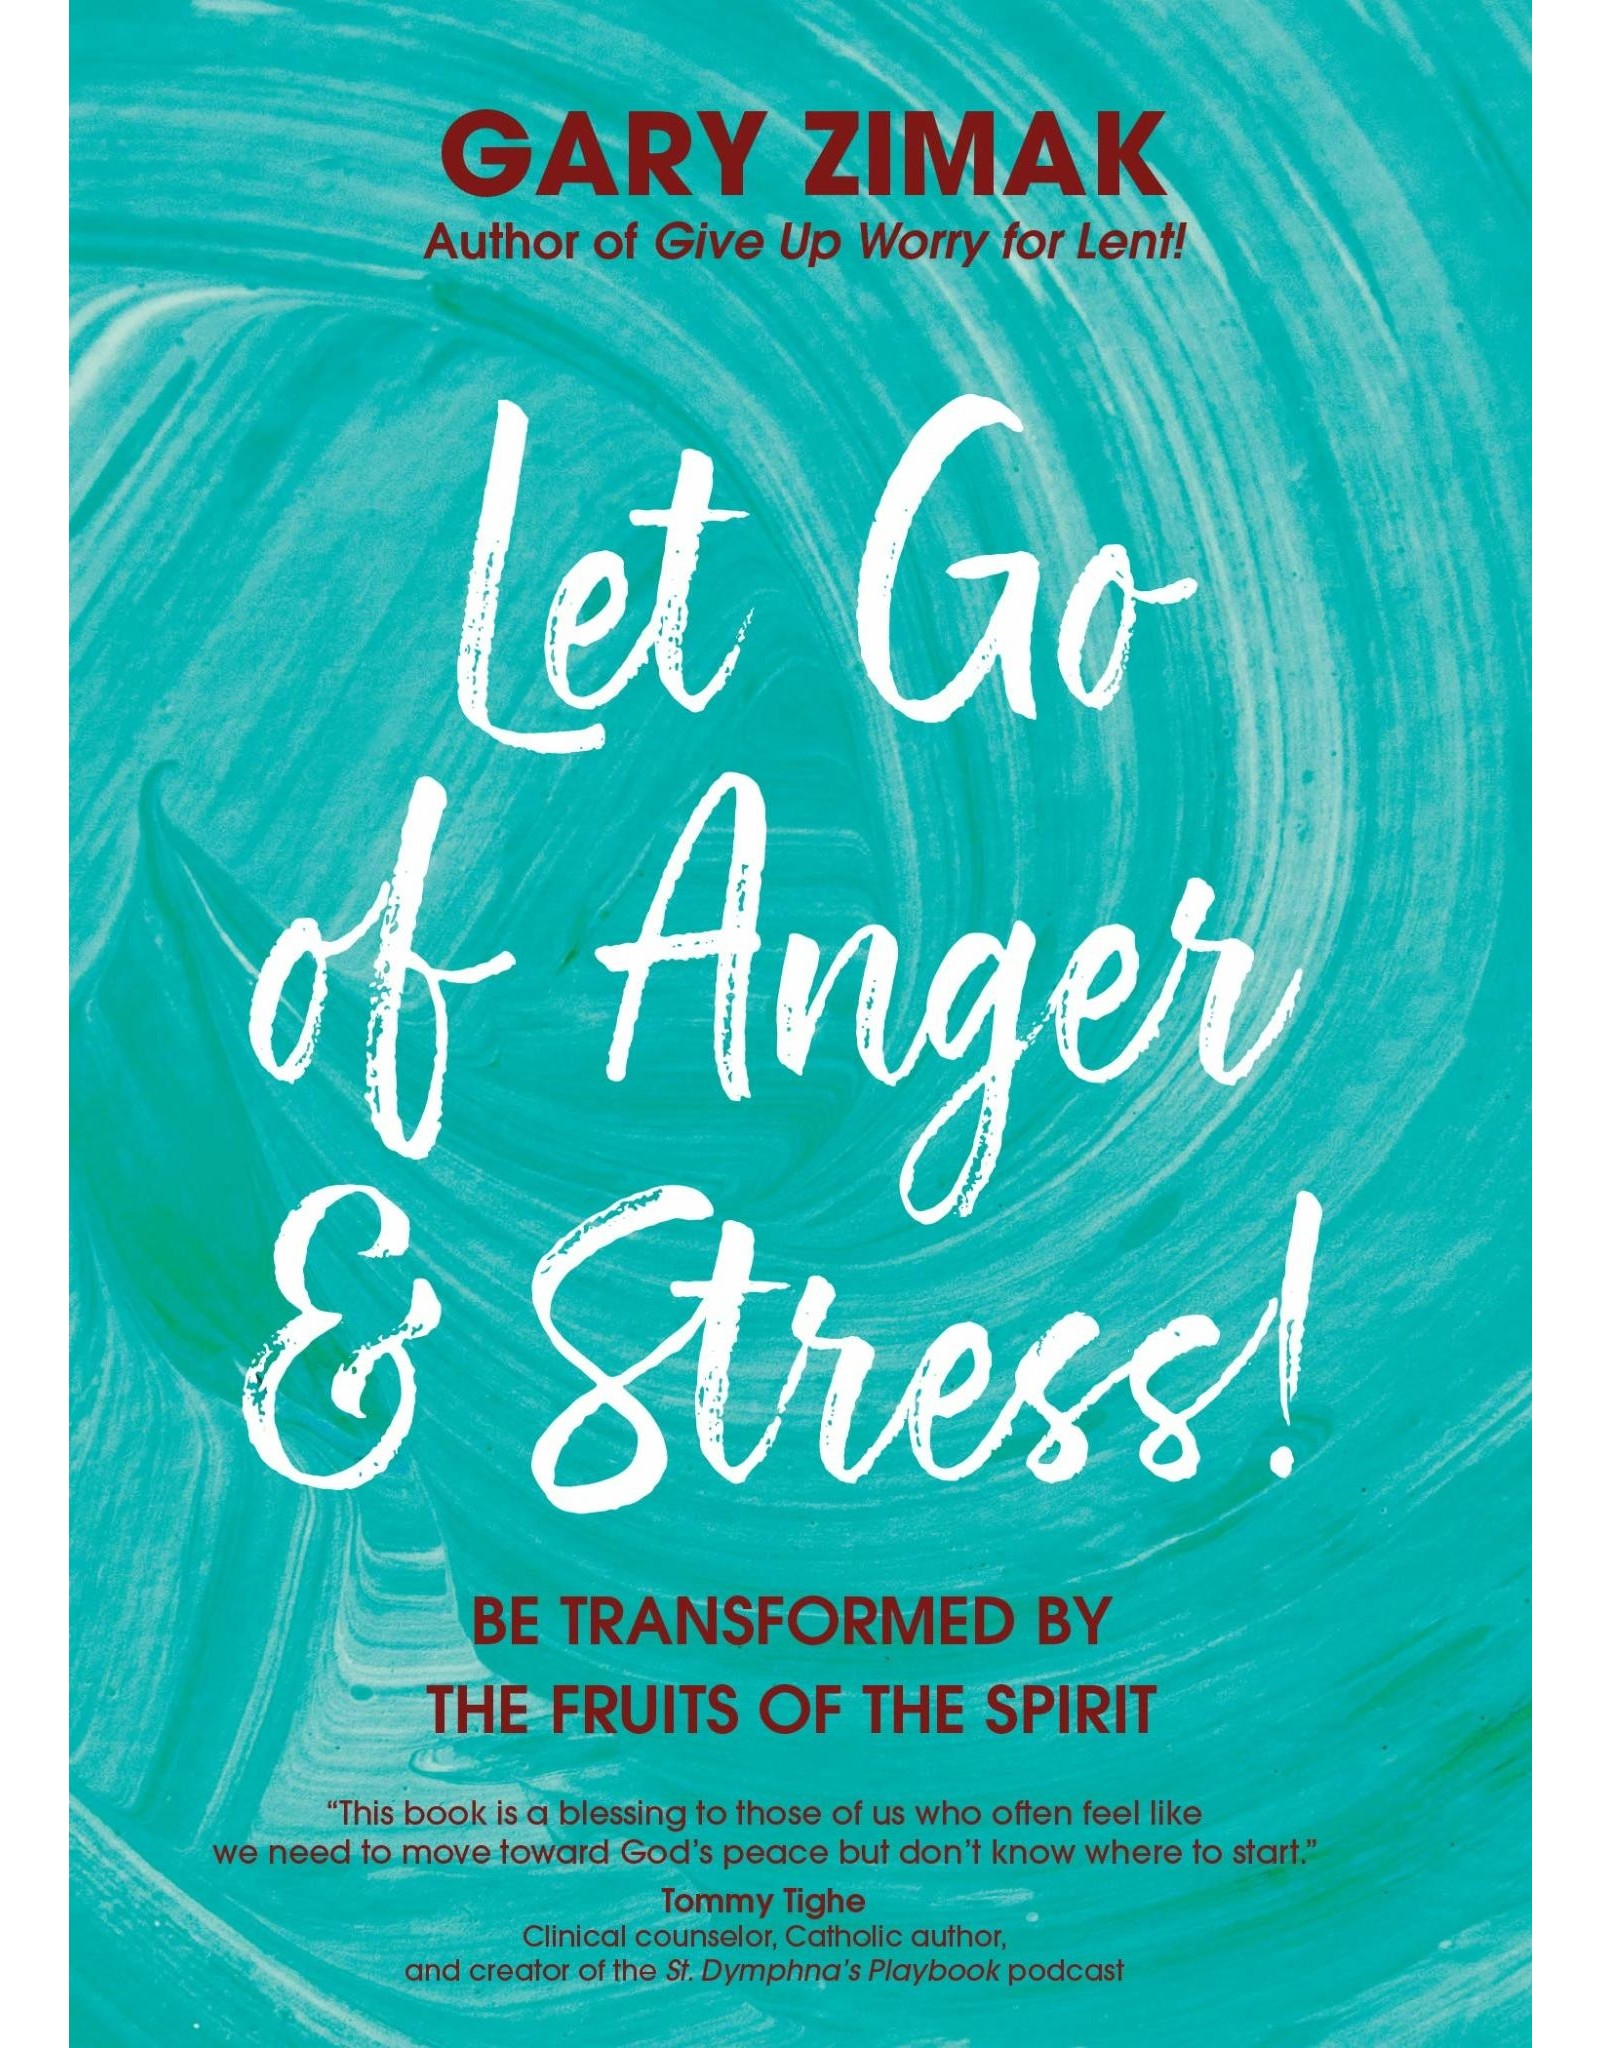 Let Go of Anger & Stress! Be Transformed by the Fruits of the Spirit